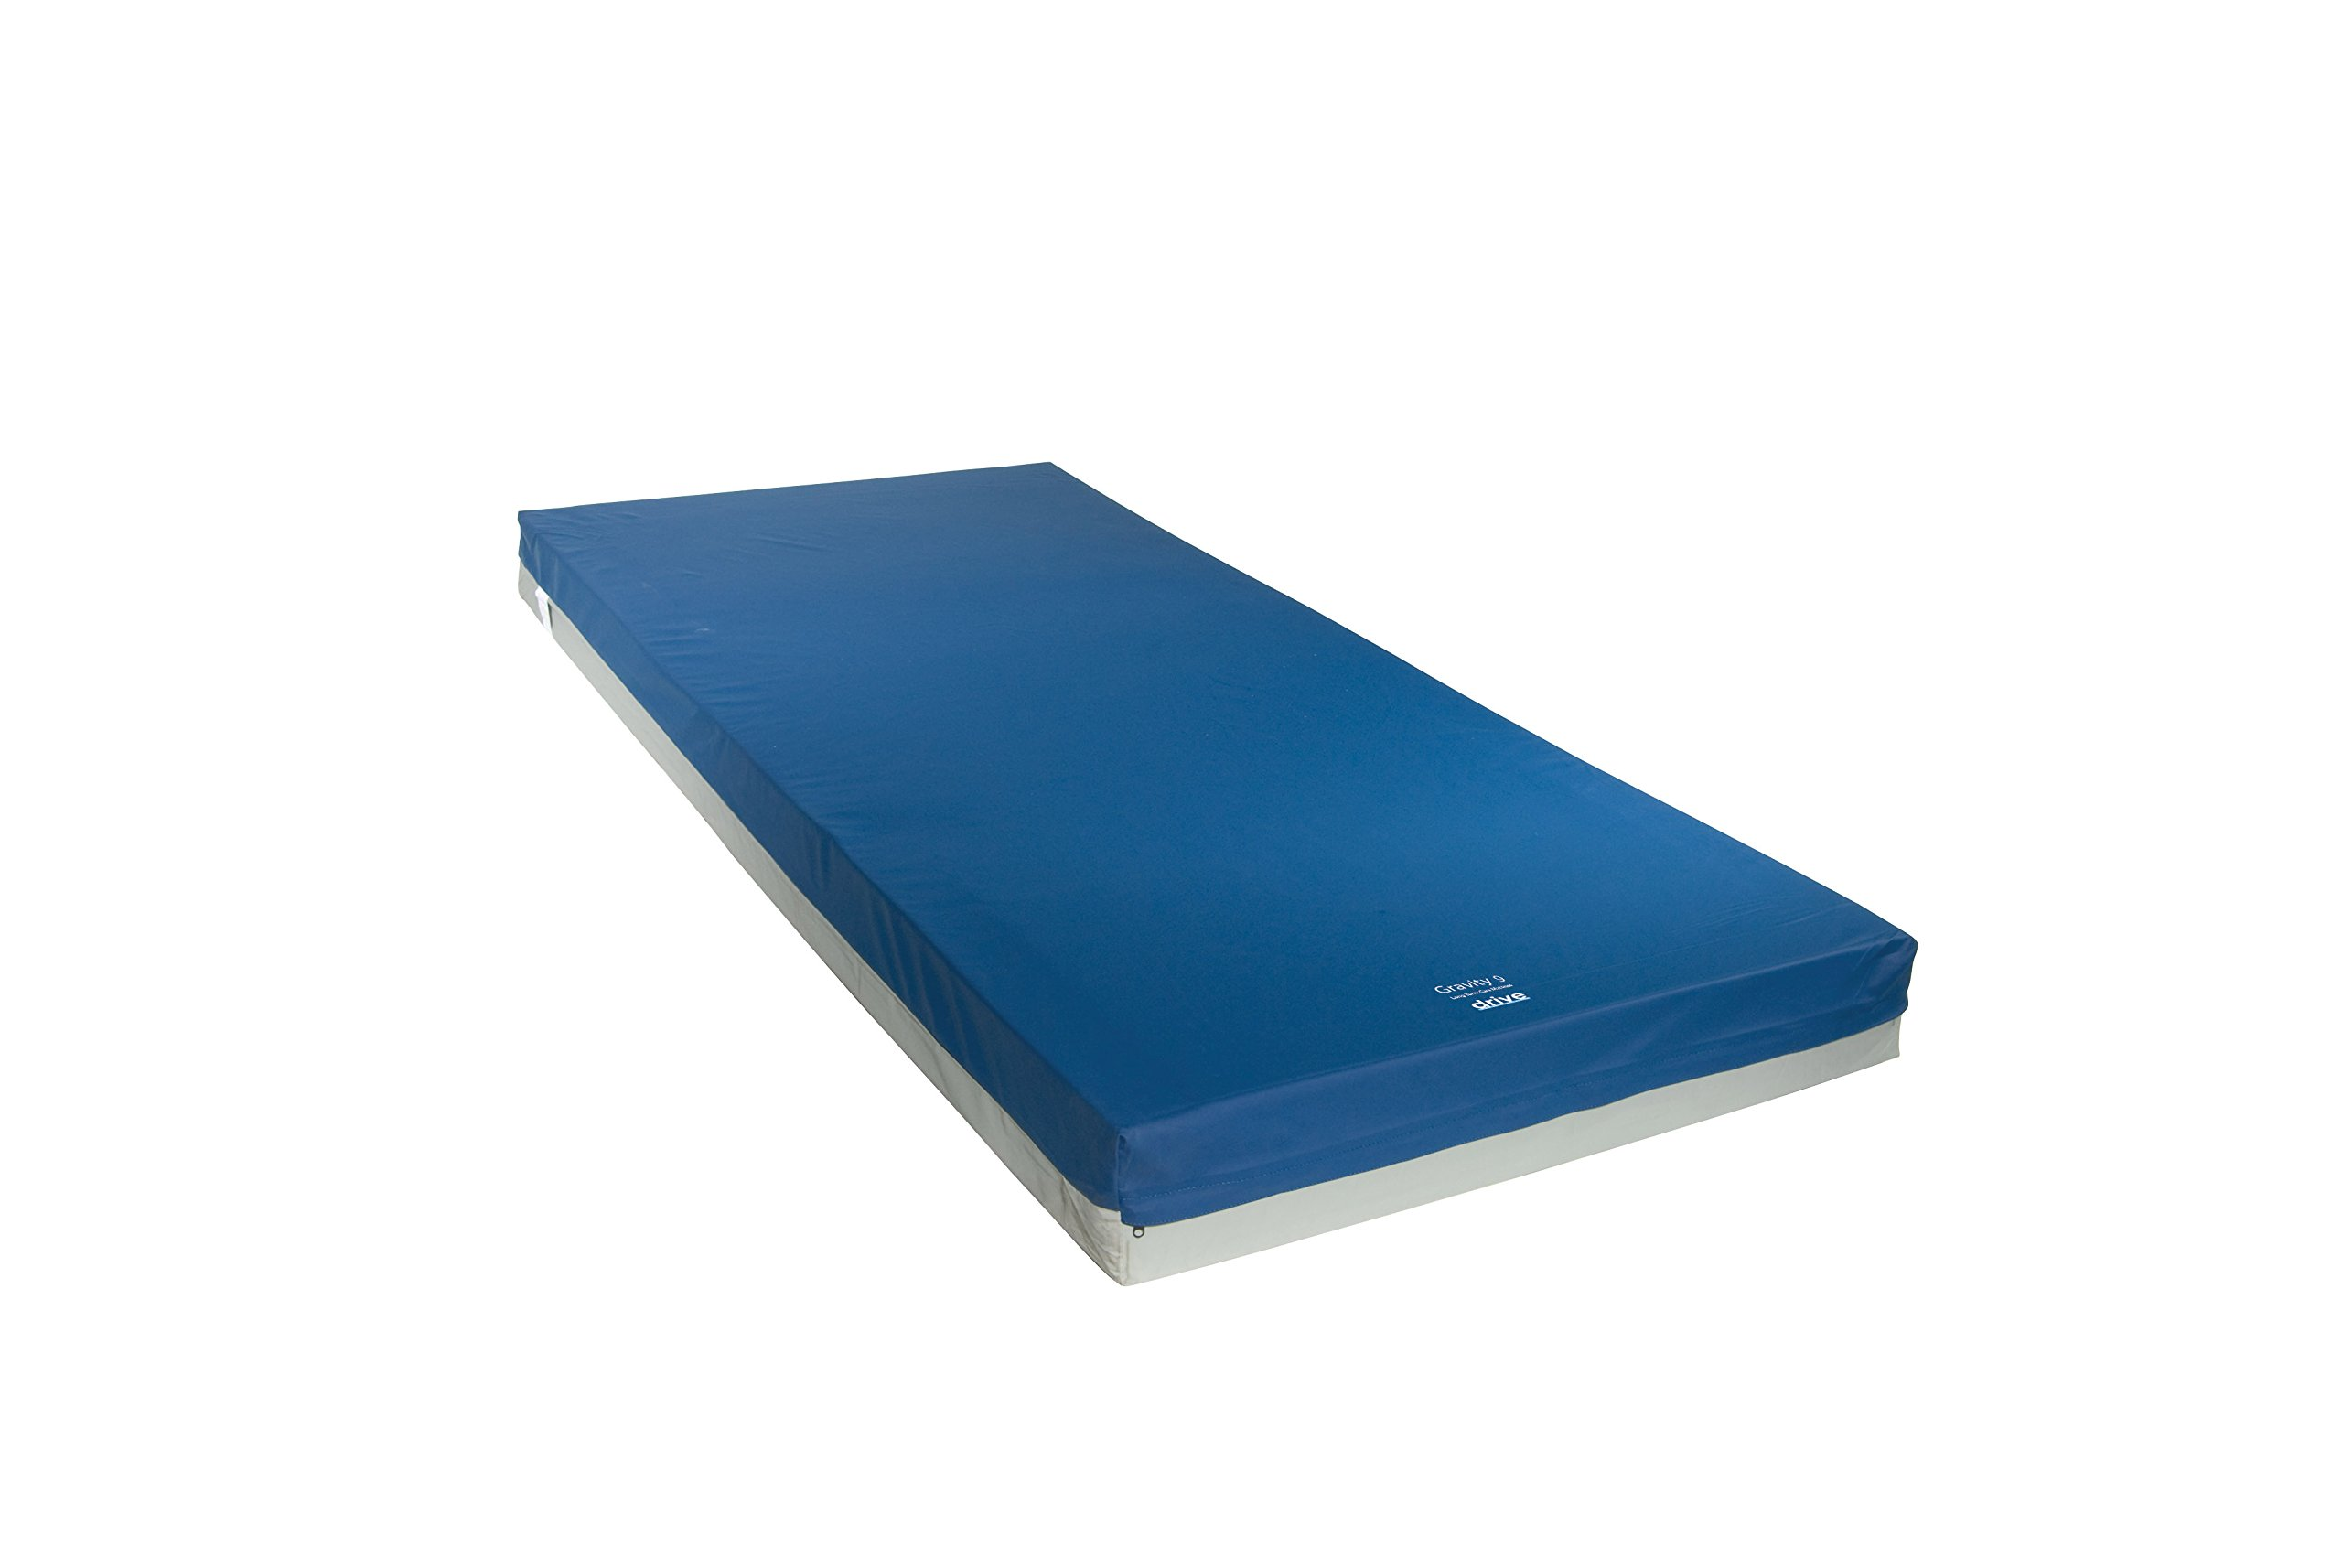 Drive Medical Gravity 9 Long Term Care Pressure Redistribution Mattress, No Cut Out, Medium